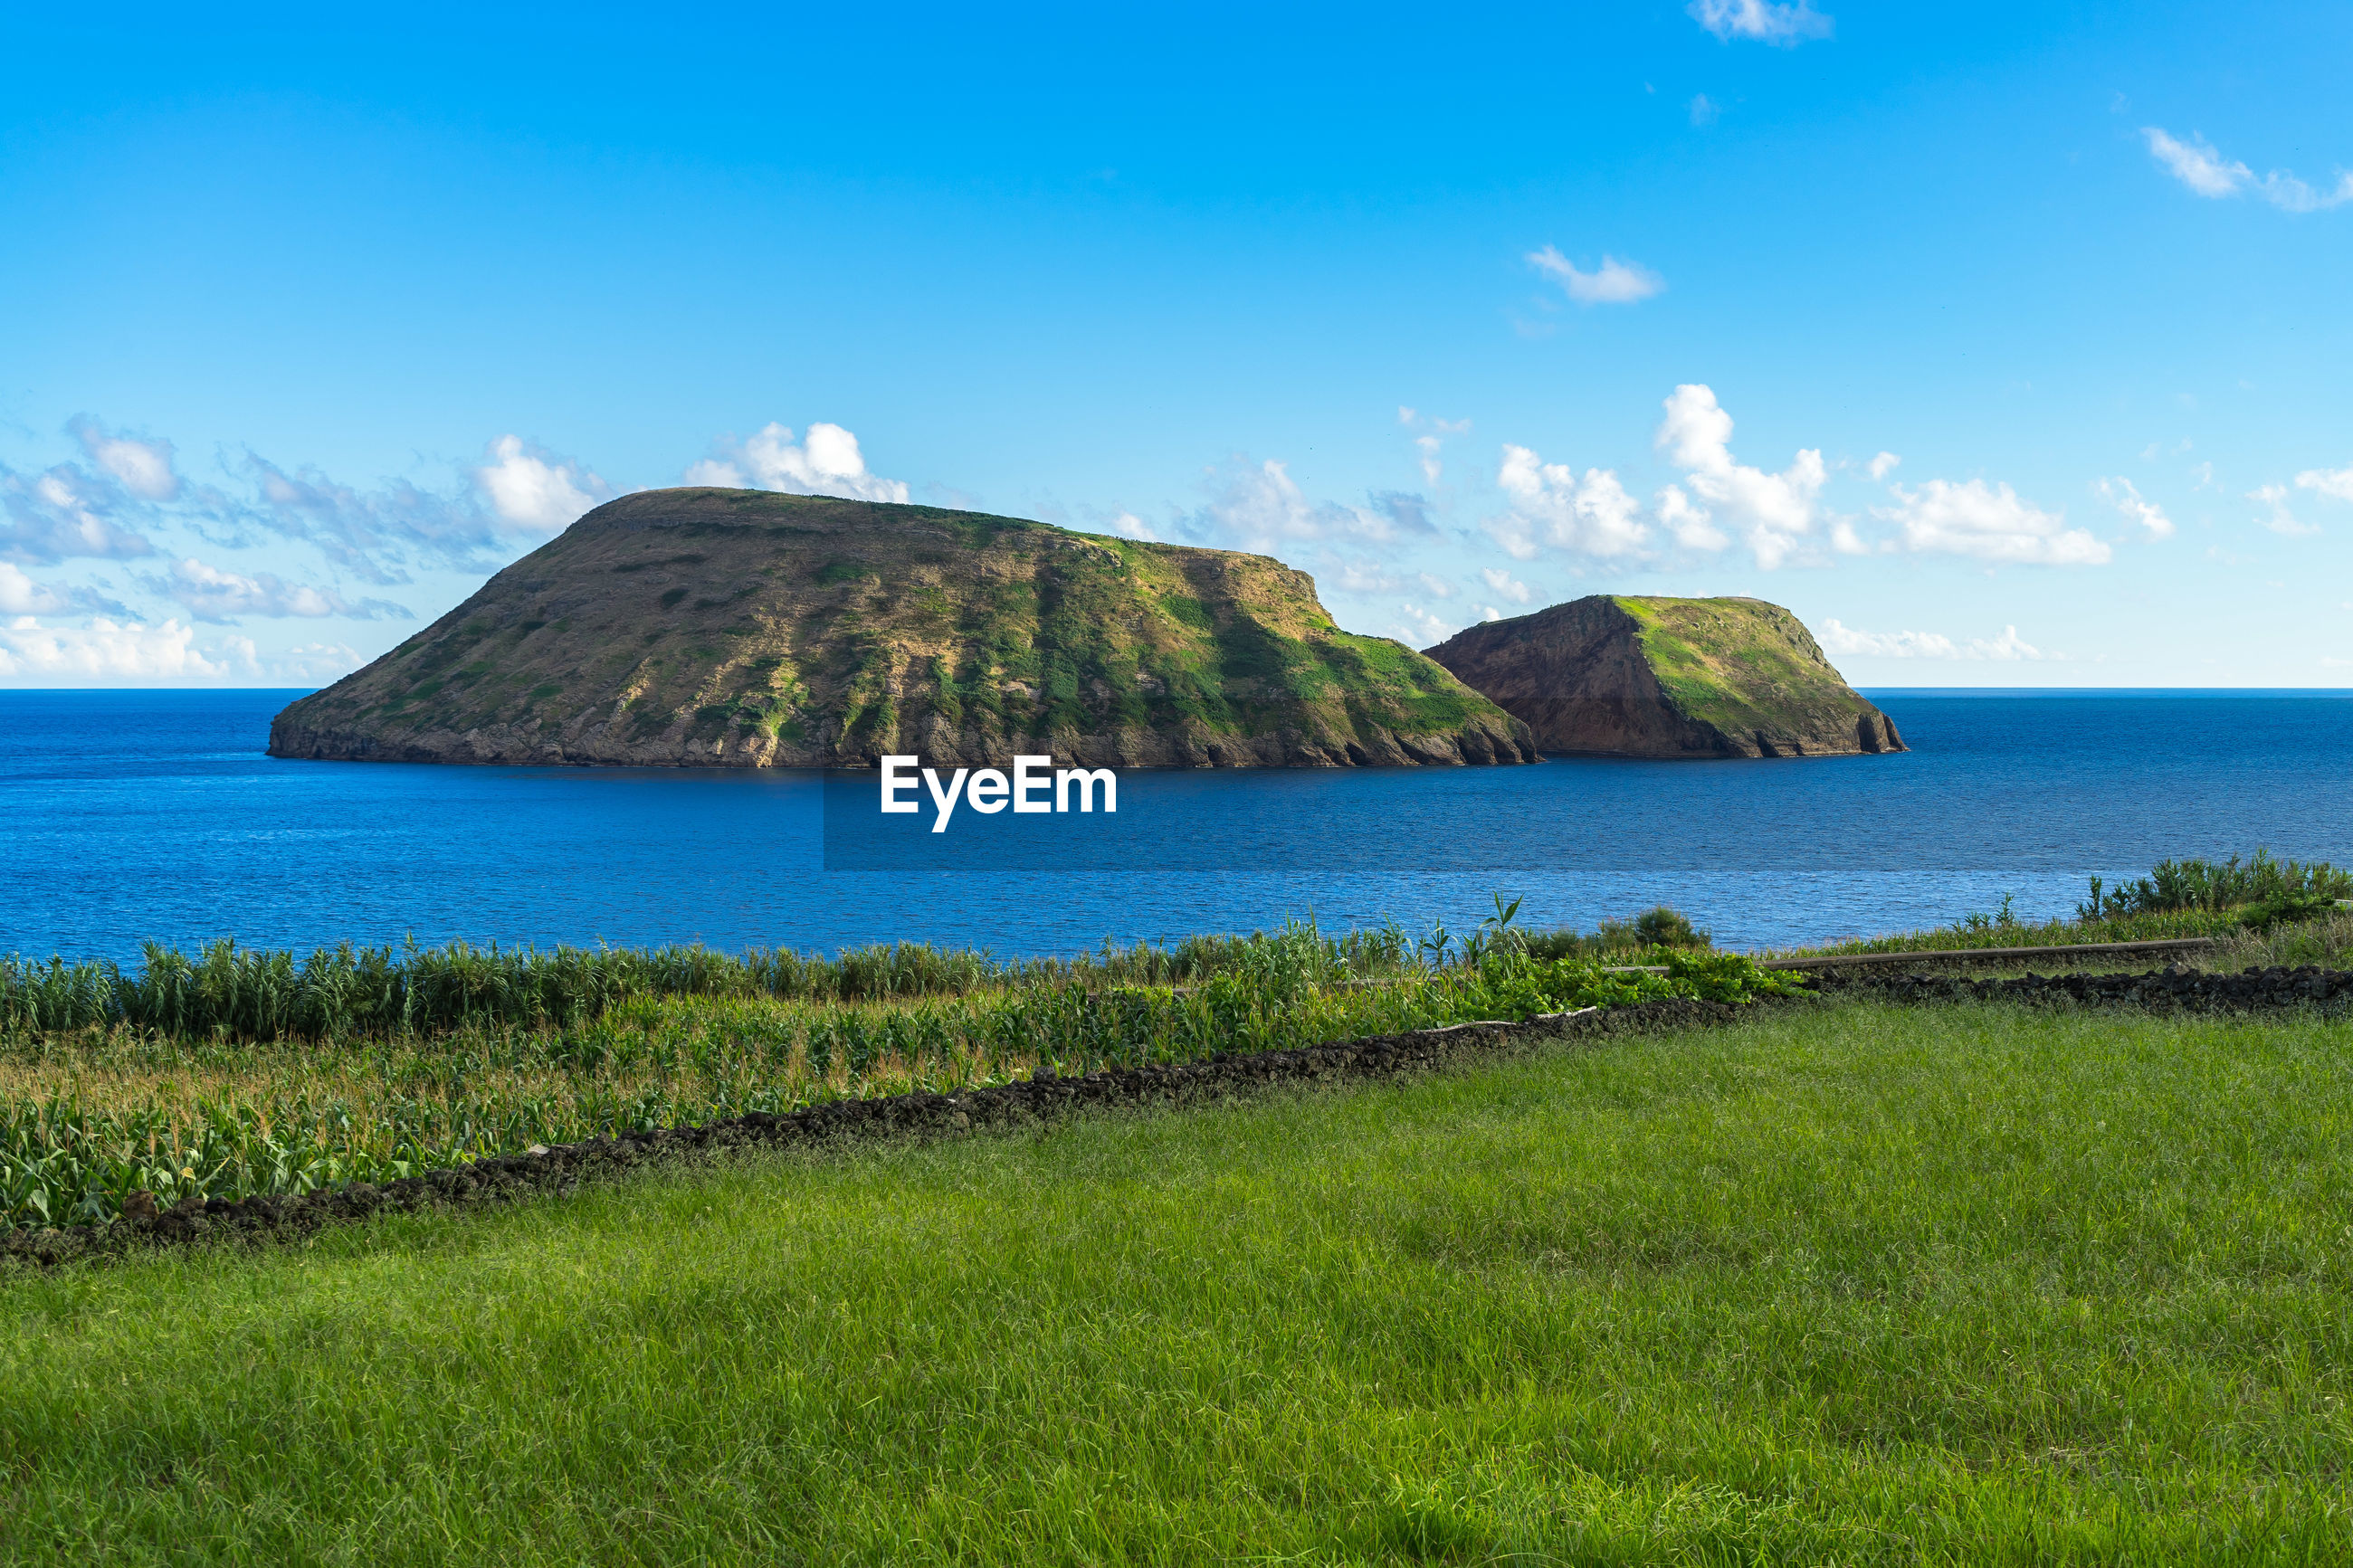 Scenic view of sea and island seen from grassy field